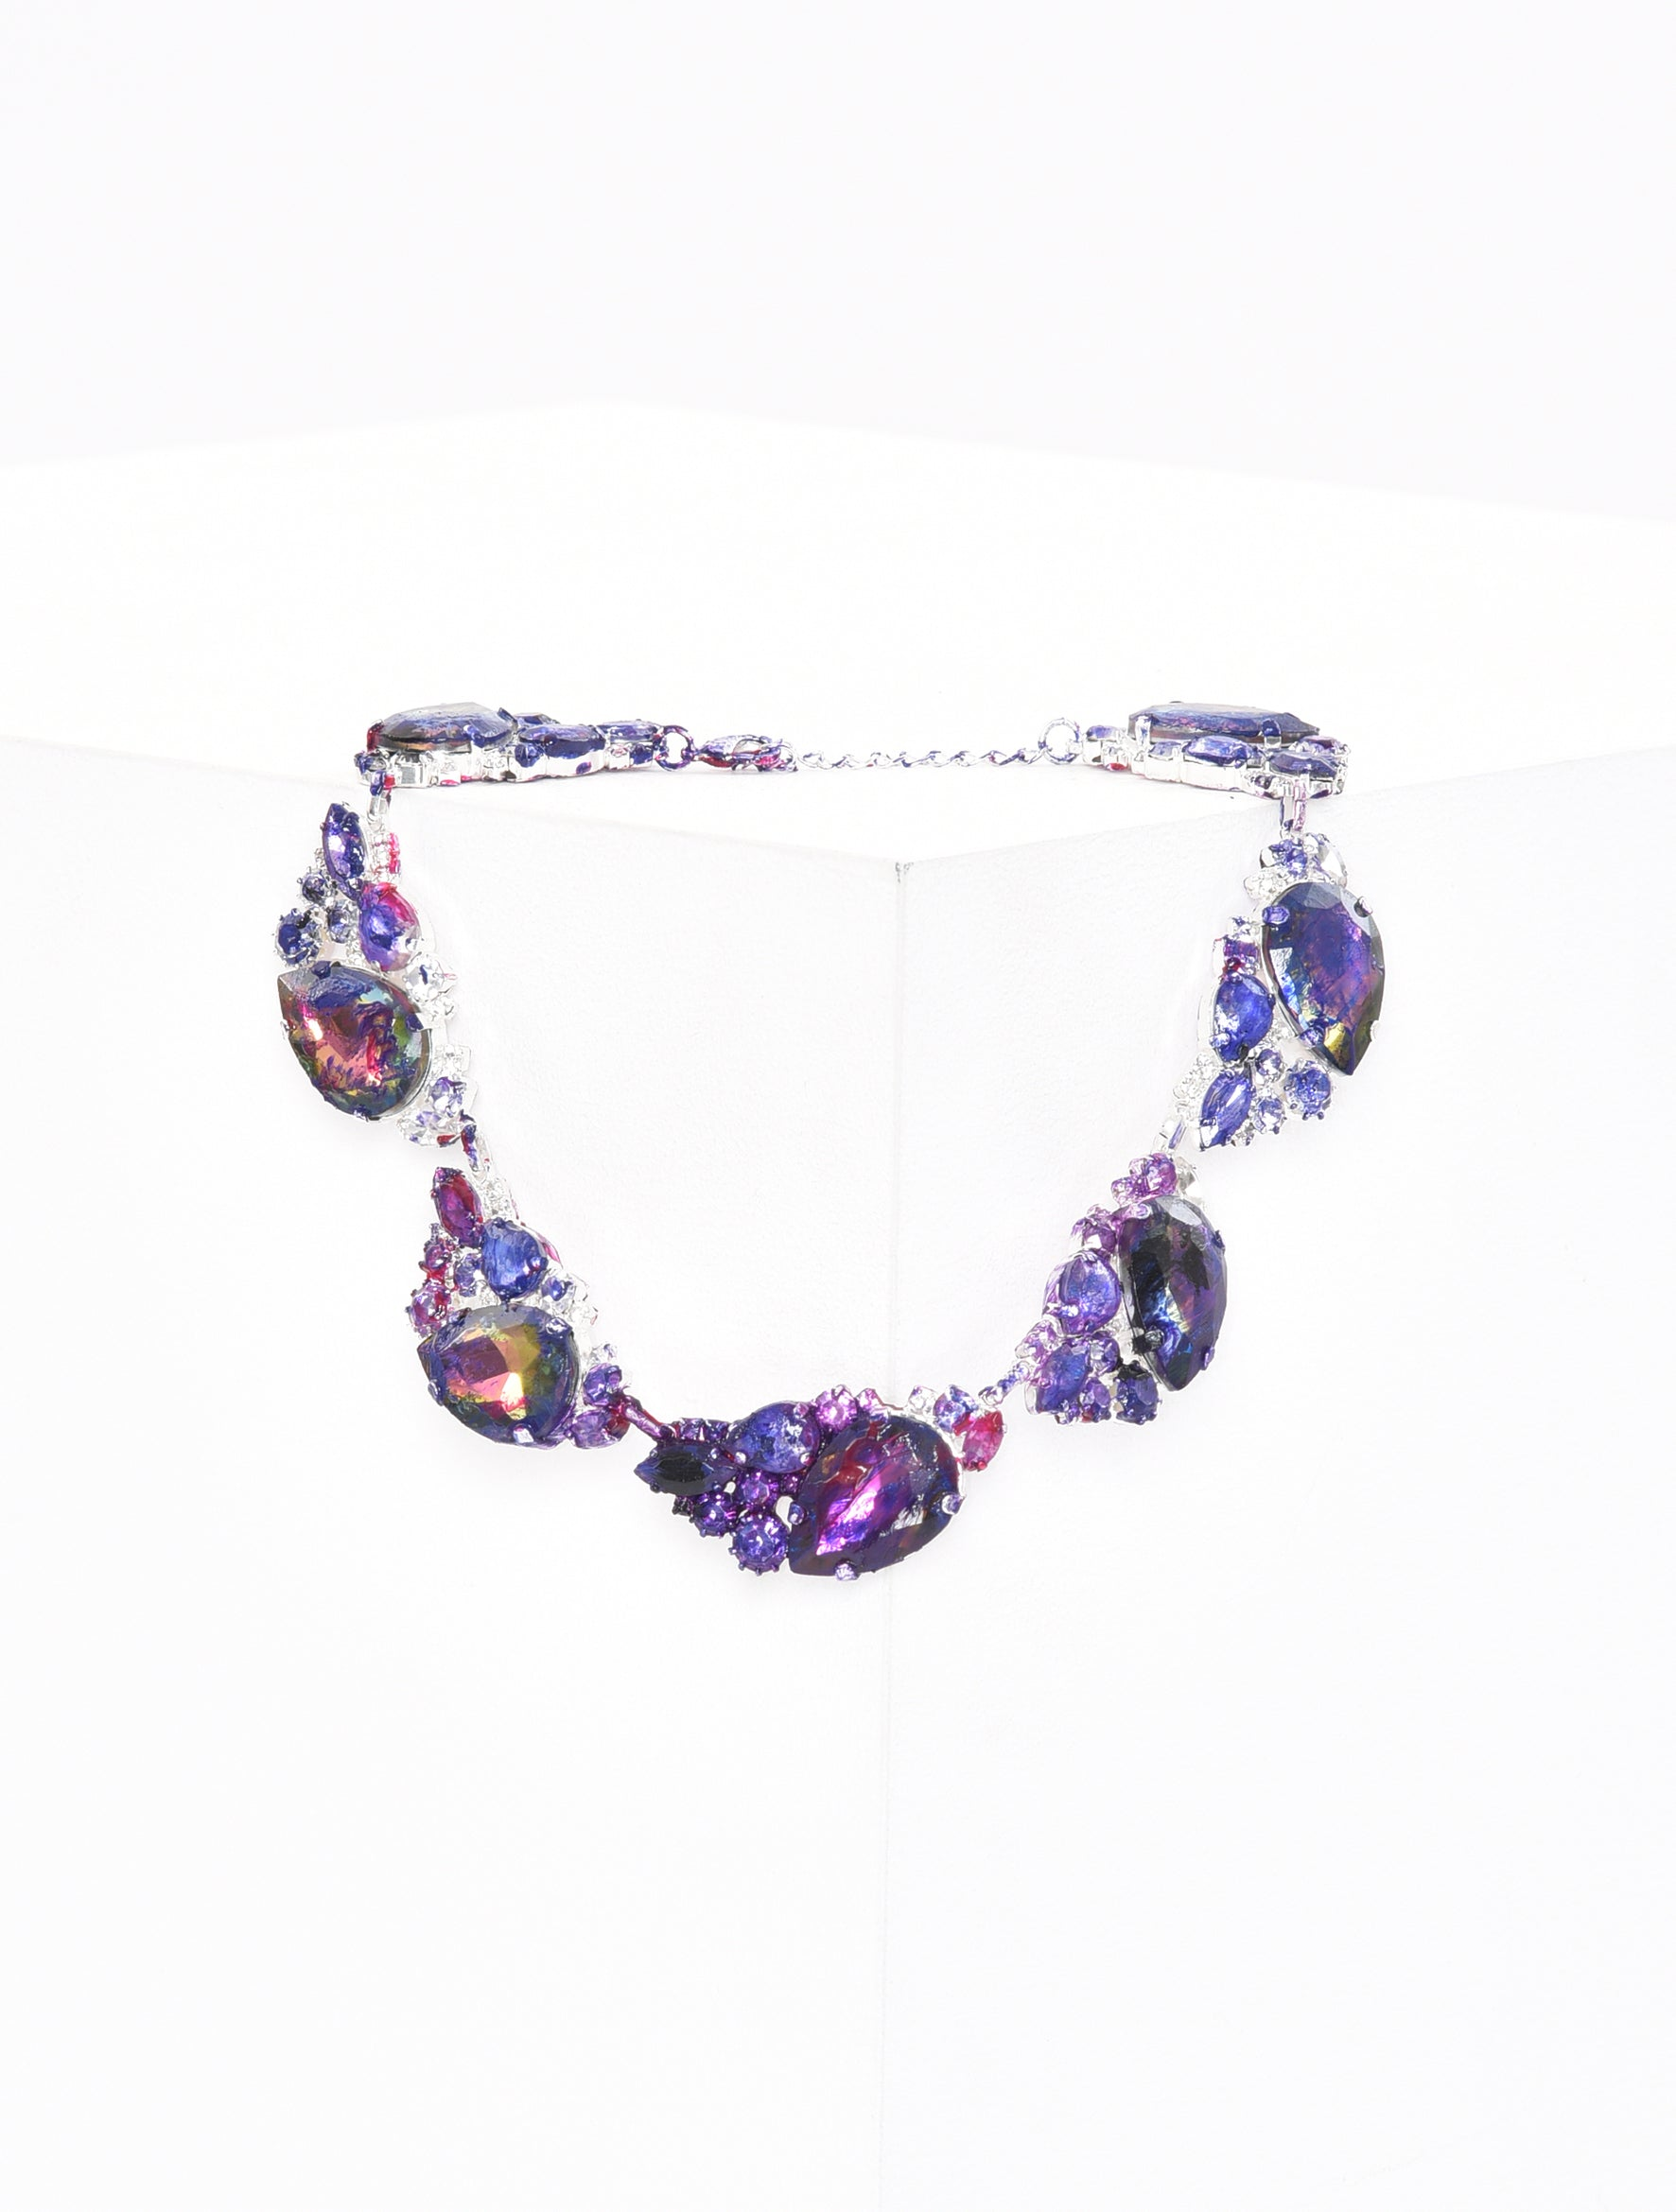 Art School x Dominic Myatt Necklace Skew 3